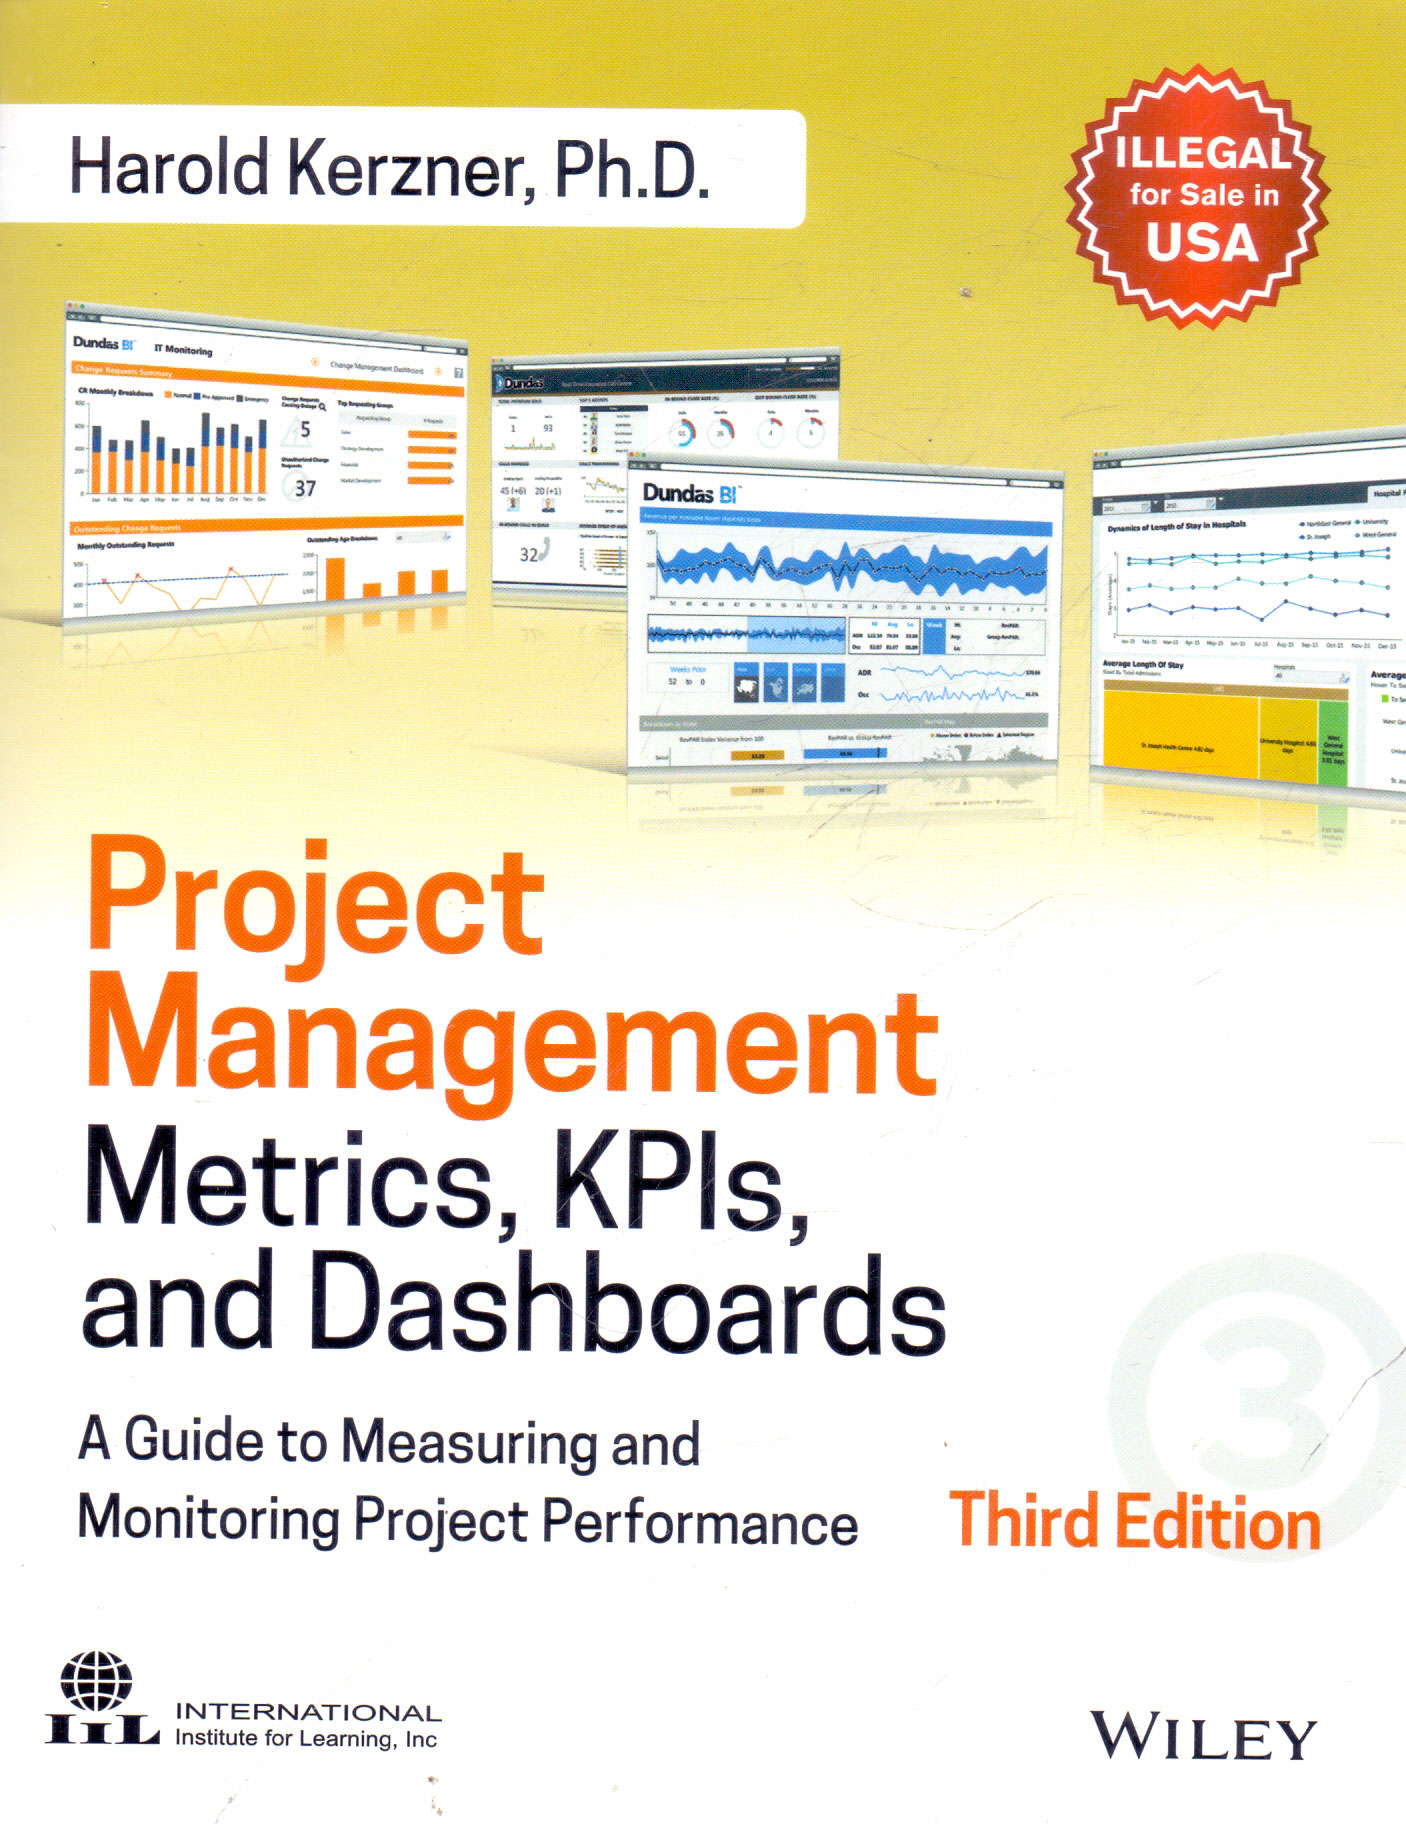 Project Management Metrics KPIs and Dashboards a Guide to Measuring and Monitoring Project Performance